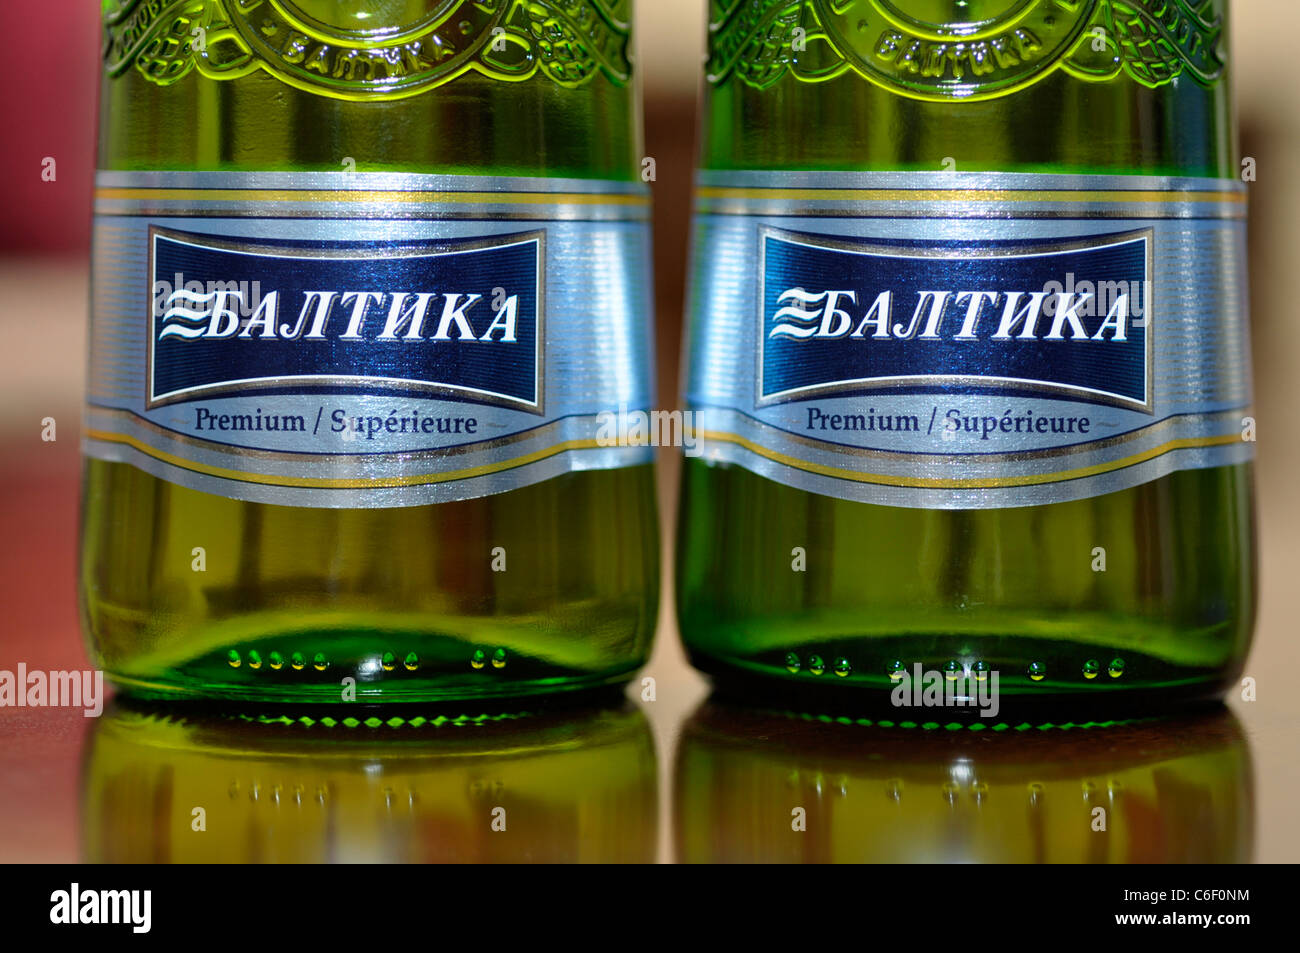 Closeup of two Bottles of Russian Lager / Beer, Baltika - Stock Image